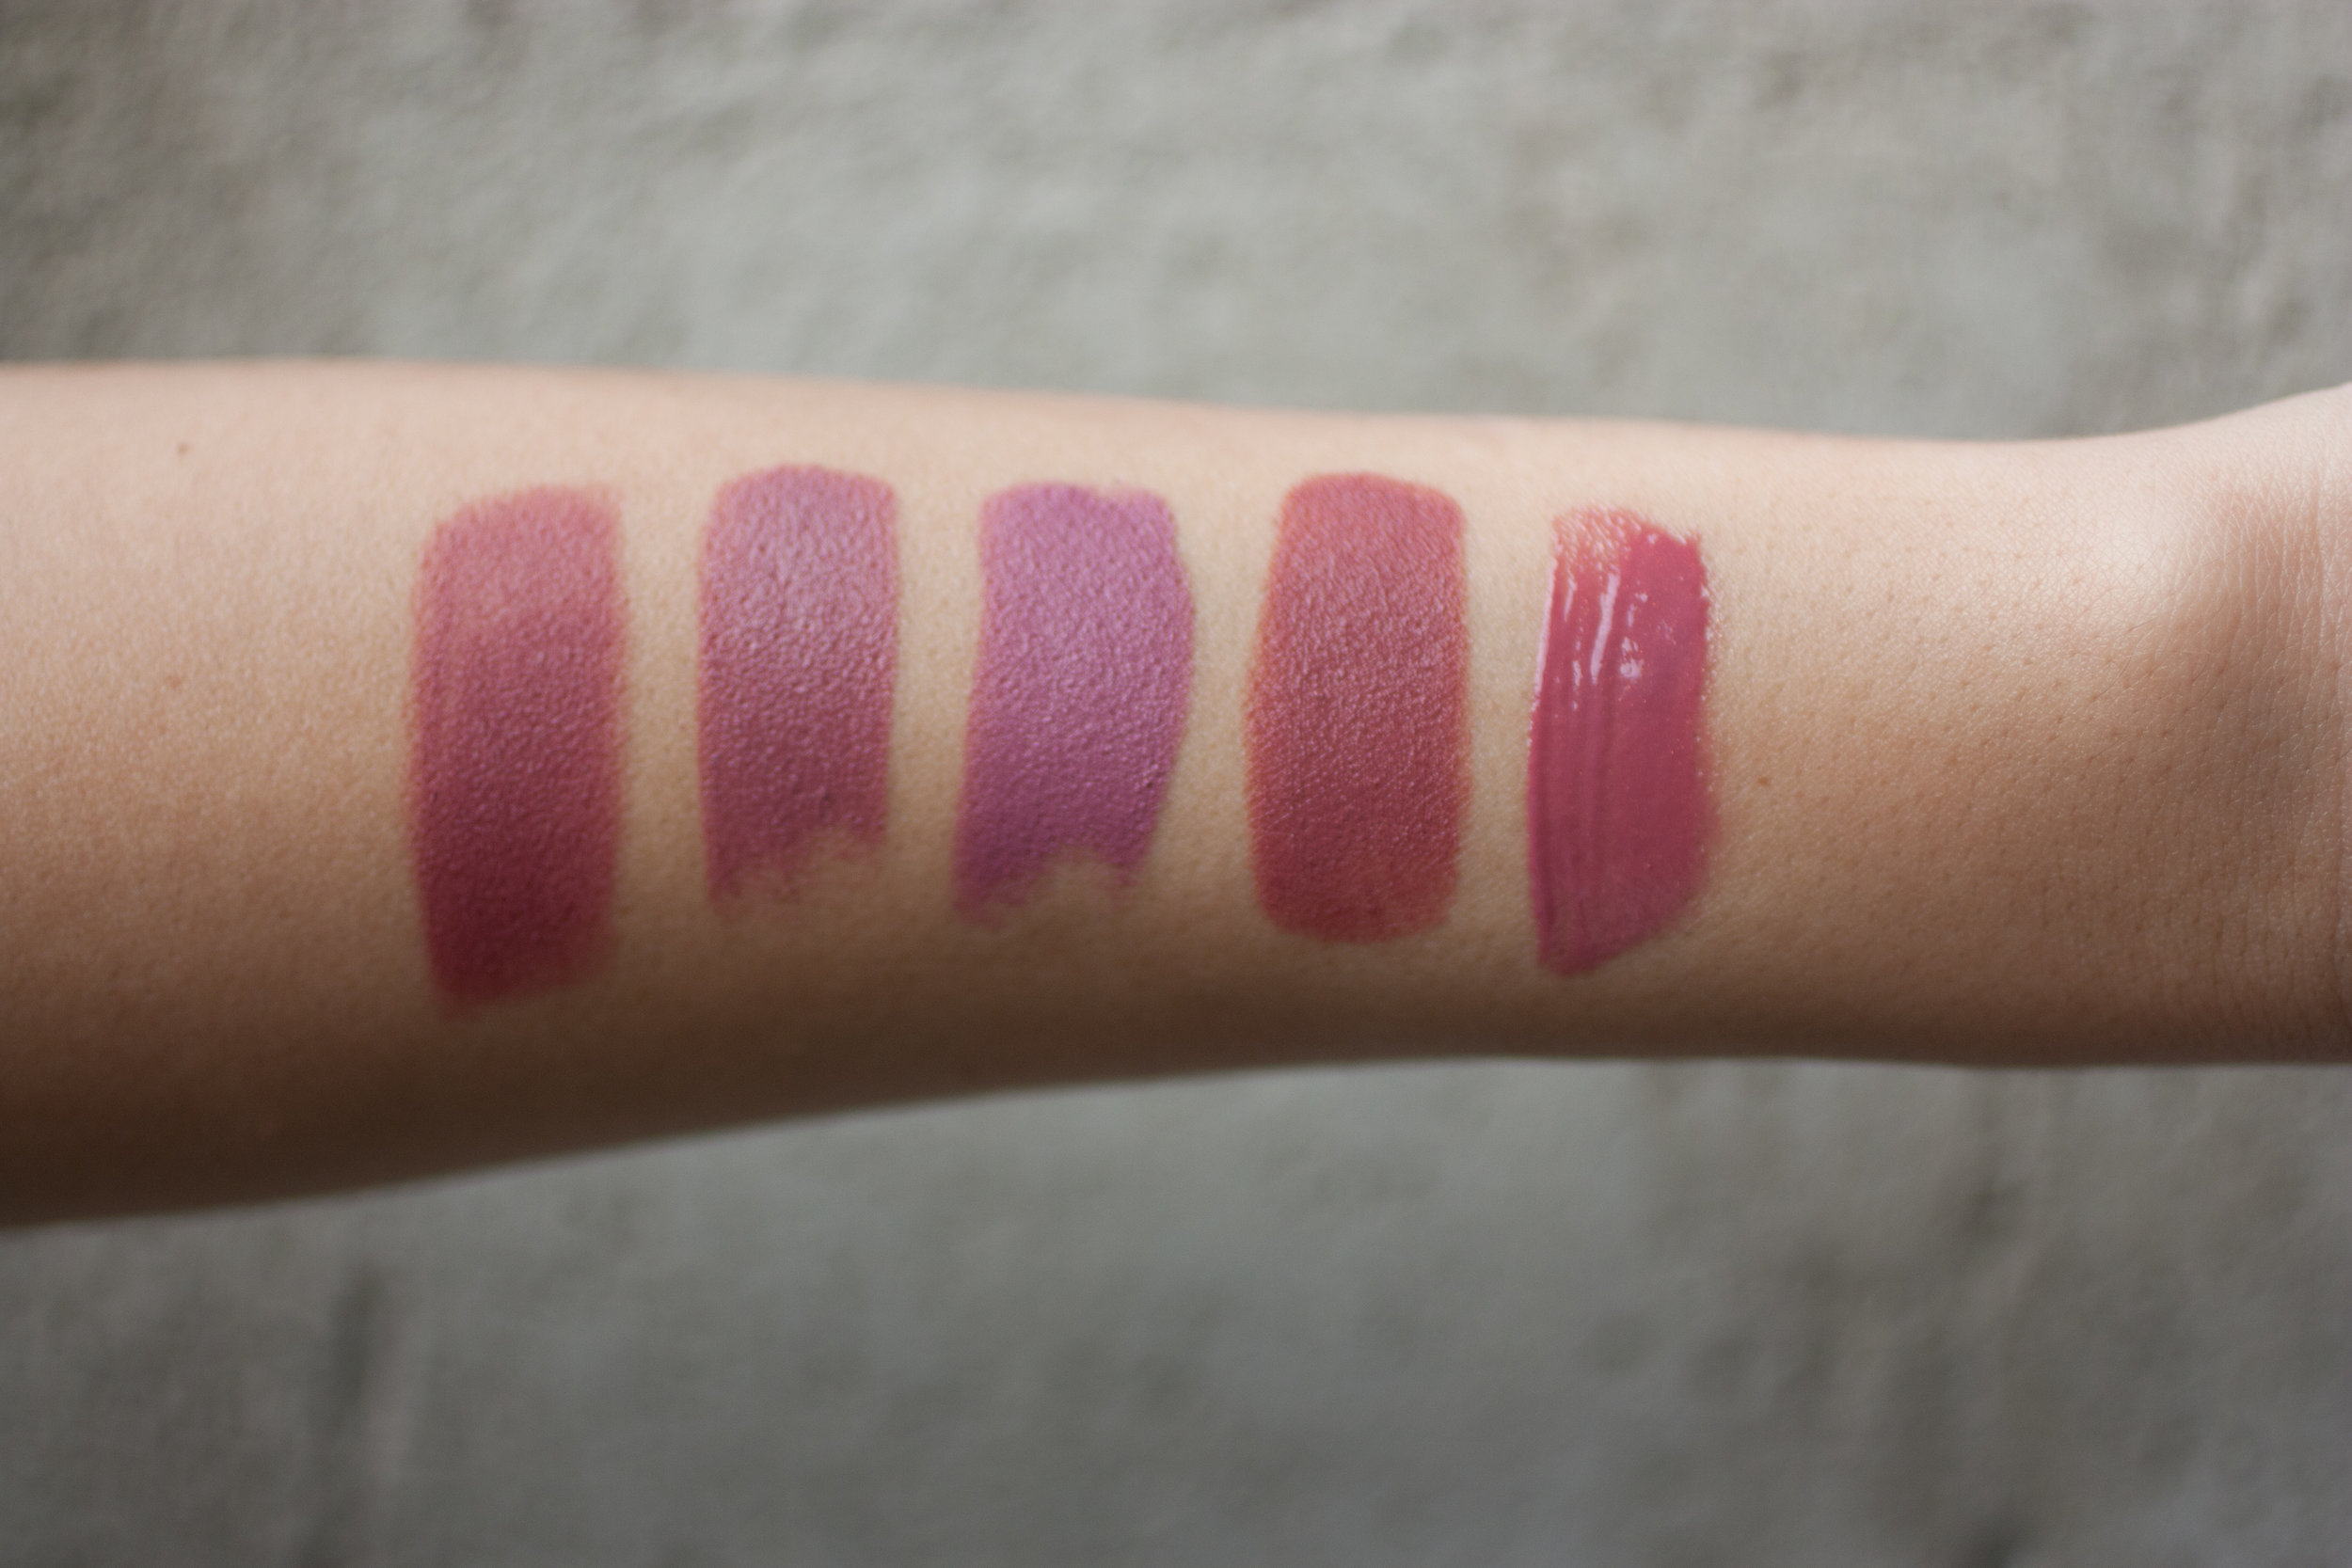 LEFT TO RIGHT:  Charlotte Tilbury Bond Girl, Bite Beauty Pepper, NARS Anna, Bite Beauty Chai, bareMinerals Heartbreaker Gloss